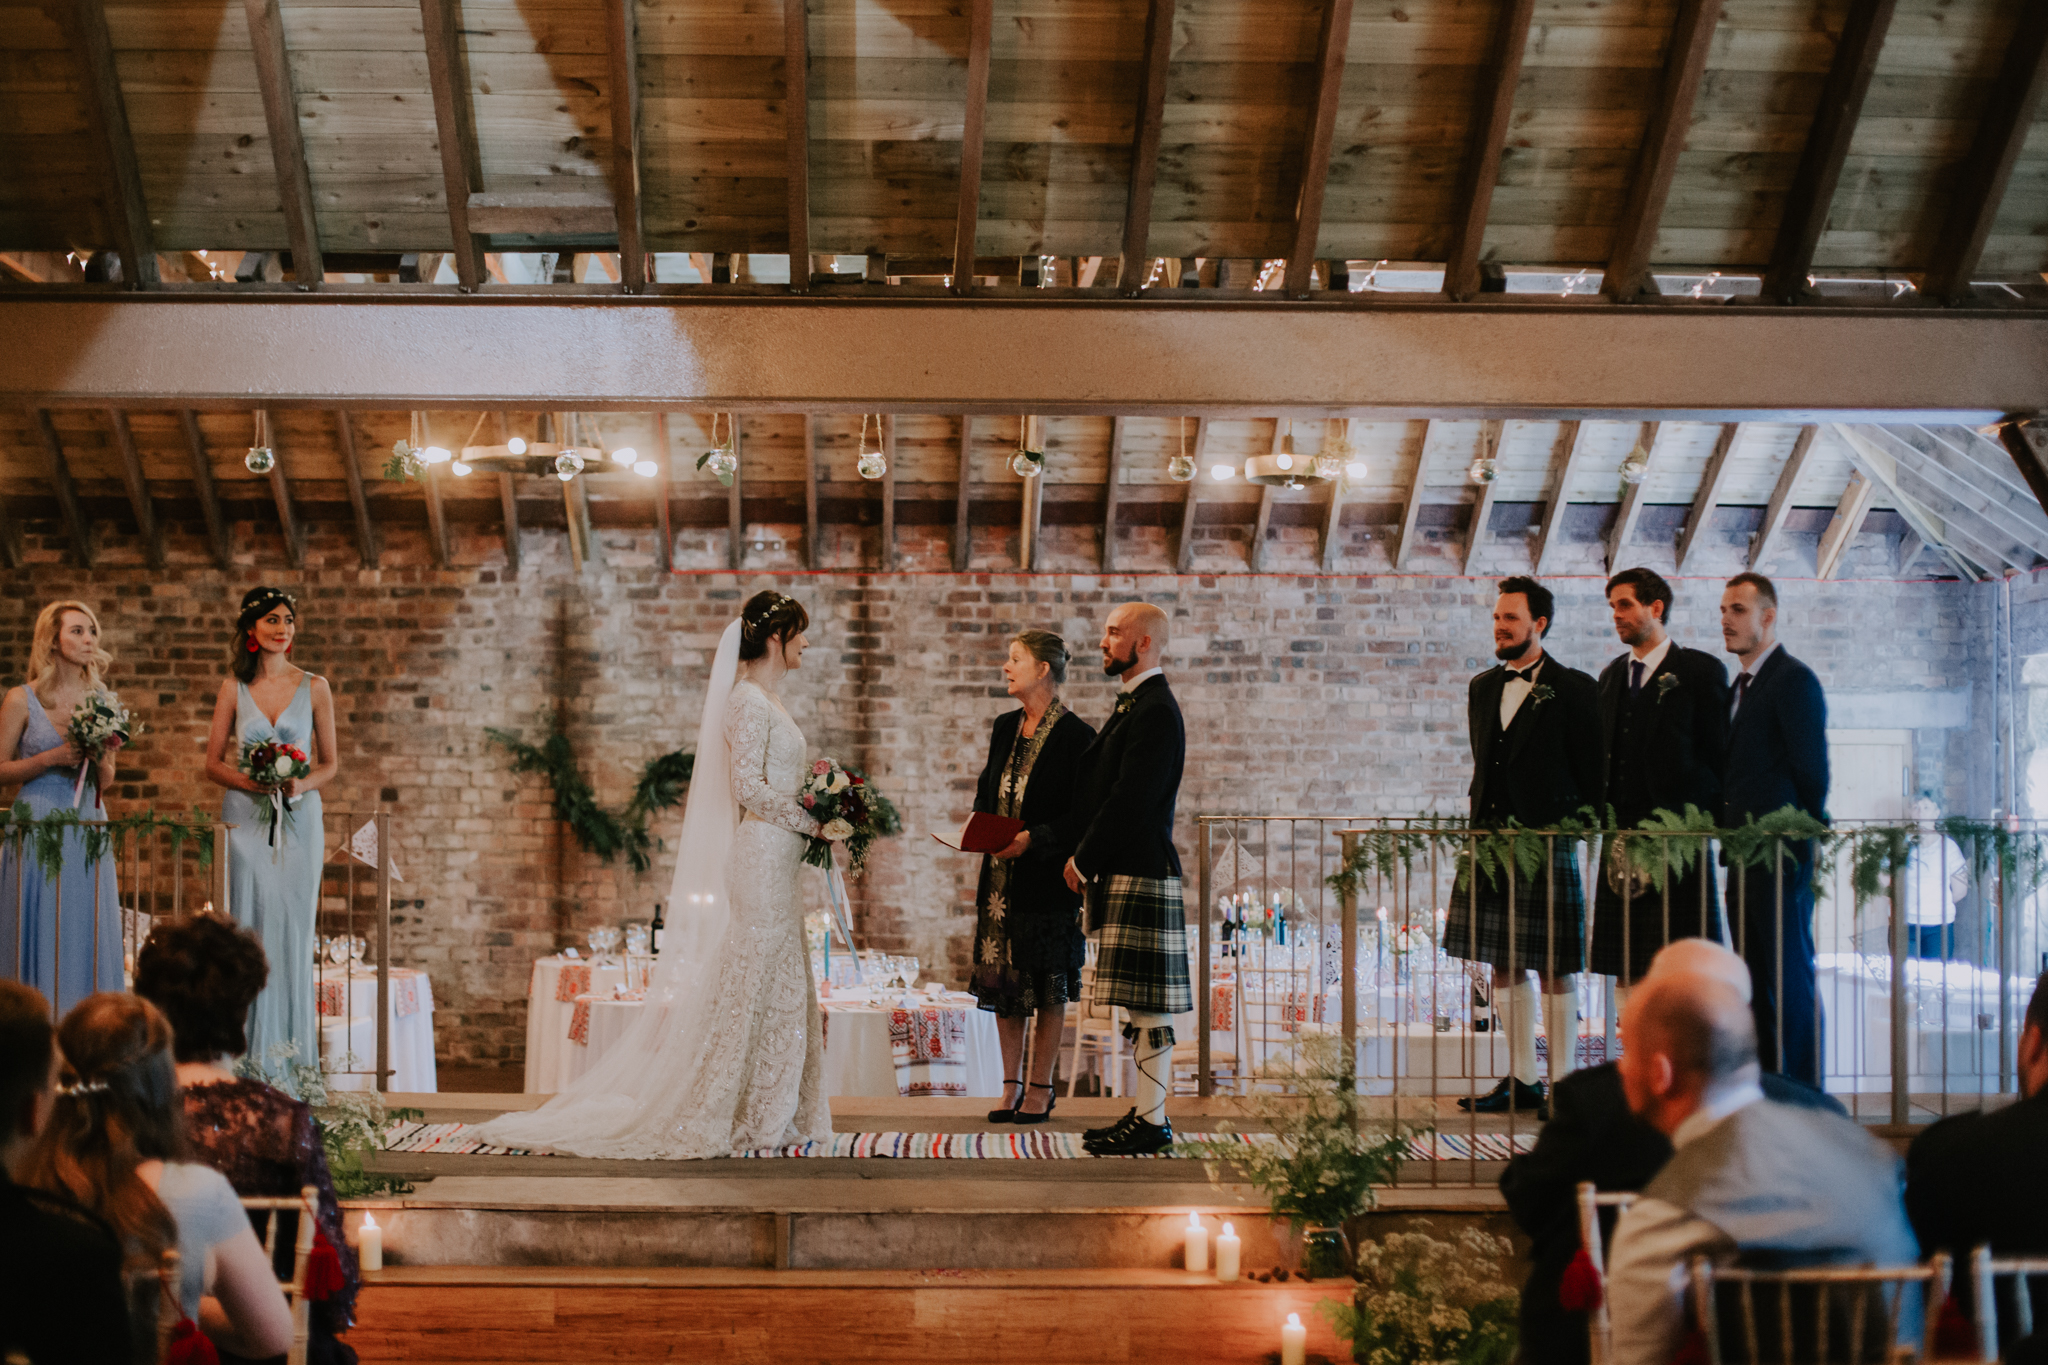 Indoor a boho style wedding ceremony at the Rhynd